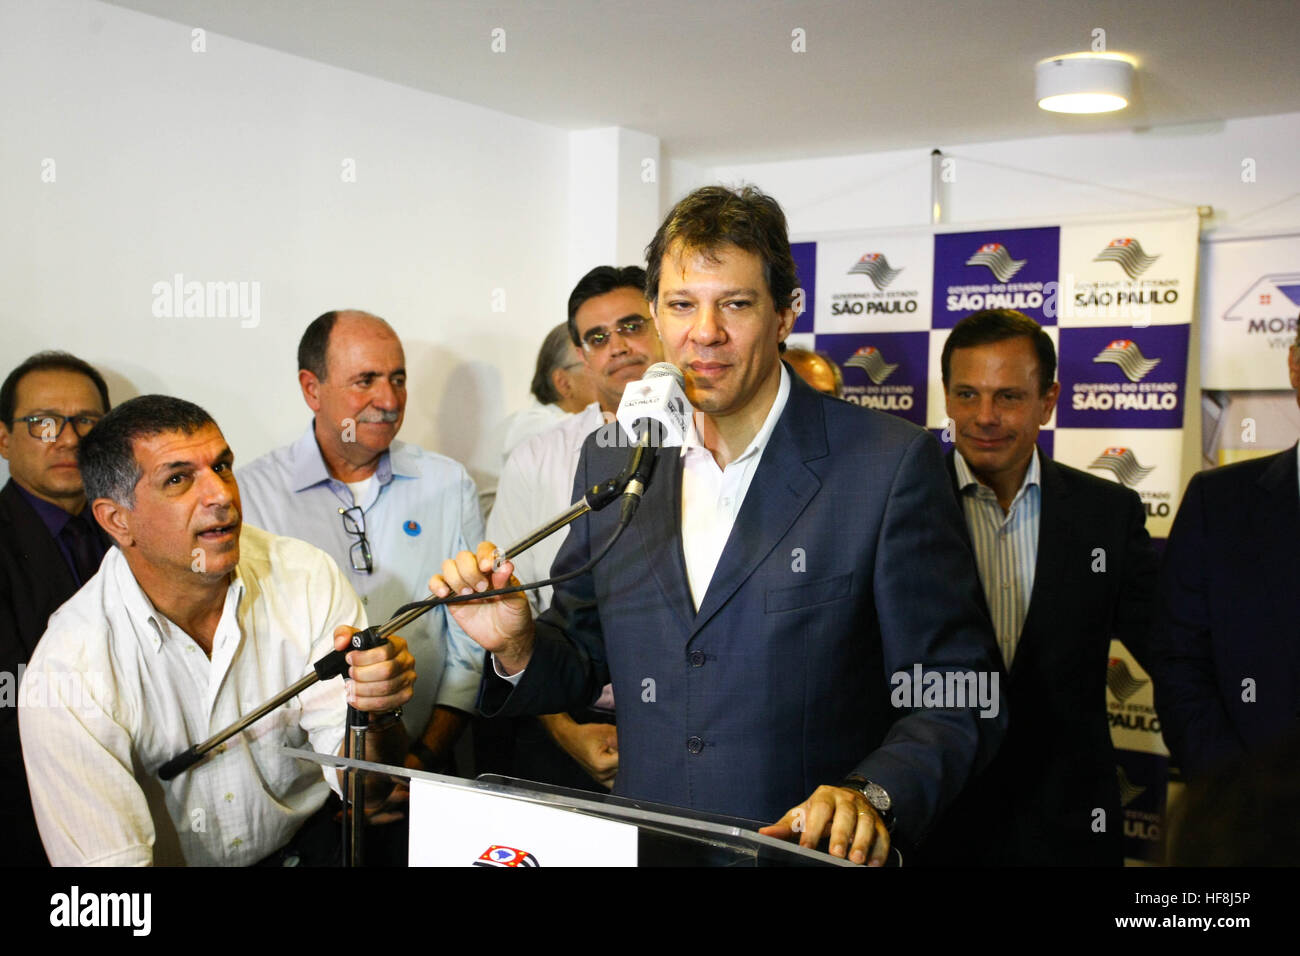 SÃO PAULO, SP - 29.12.2016: ENTREGA DE APARTAMENTOS DA PRIMEIRA PPP - Pictured Mayor Fernando Haddad. Governor Geraldo Alckmin delivered on the morning of Thursday (29), at Rua São Caetano in downtown São Paulo, 126 apartments of the first Public-Private Partnership (PPP) in the country housing for low-income families. They attended the event Mayor Fernando Haddad and the mayor elected John Doria. (Photo: Aloisio Mauricio/Fotoarena) Stock Photo